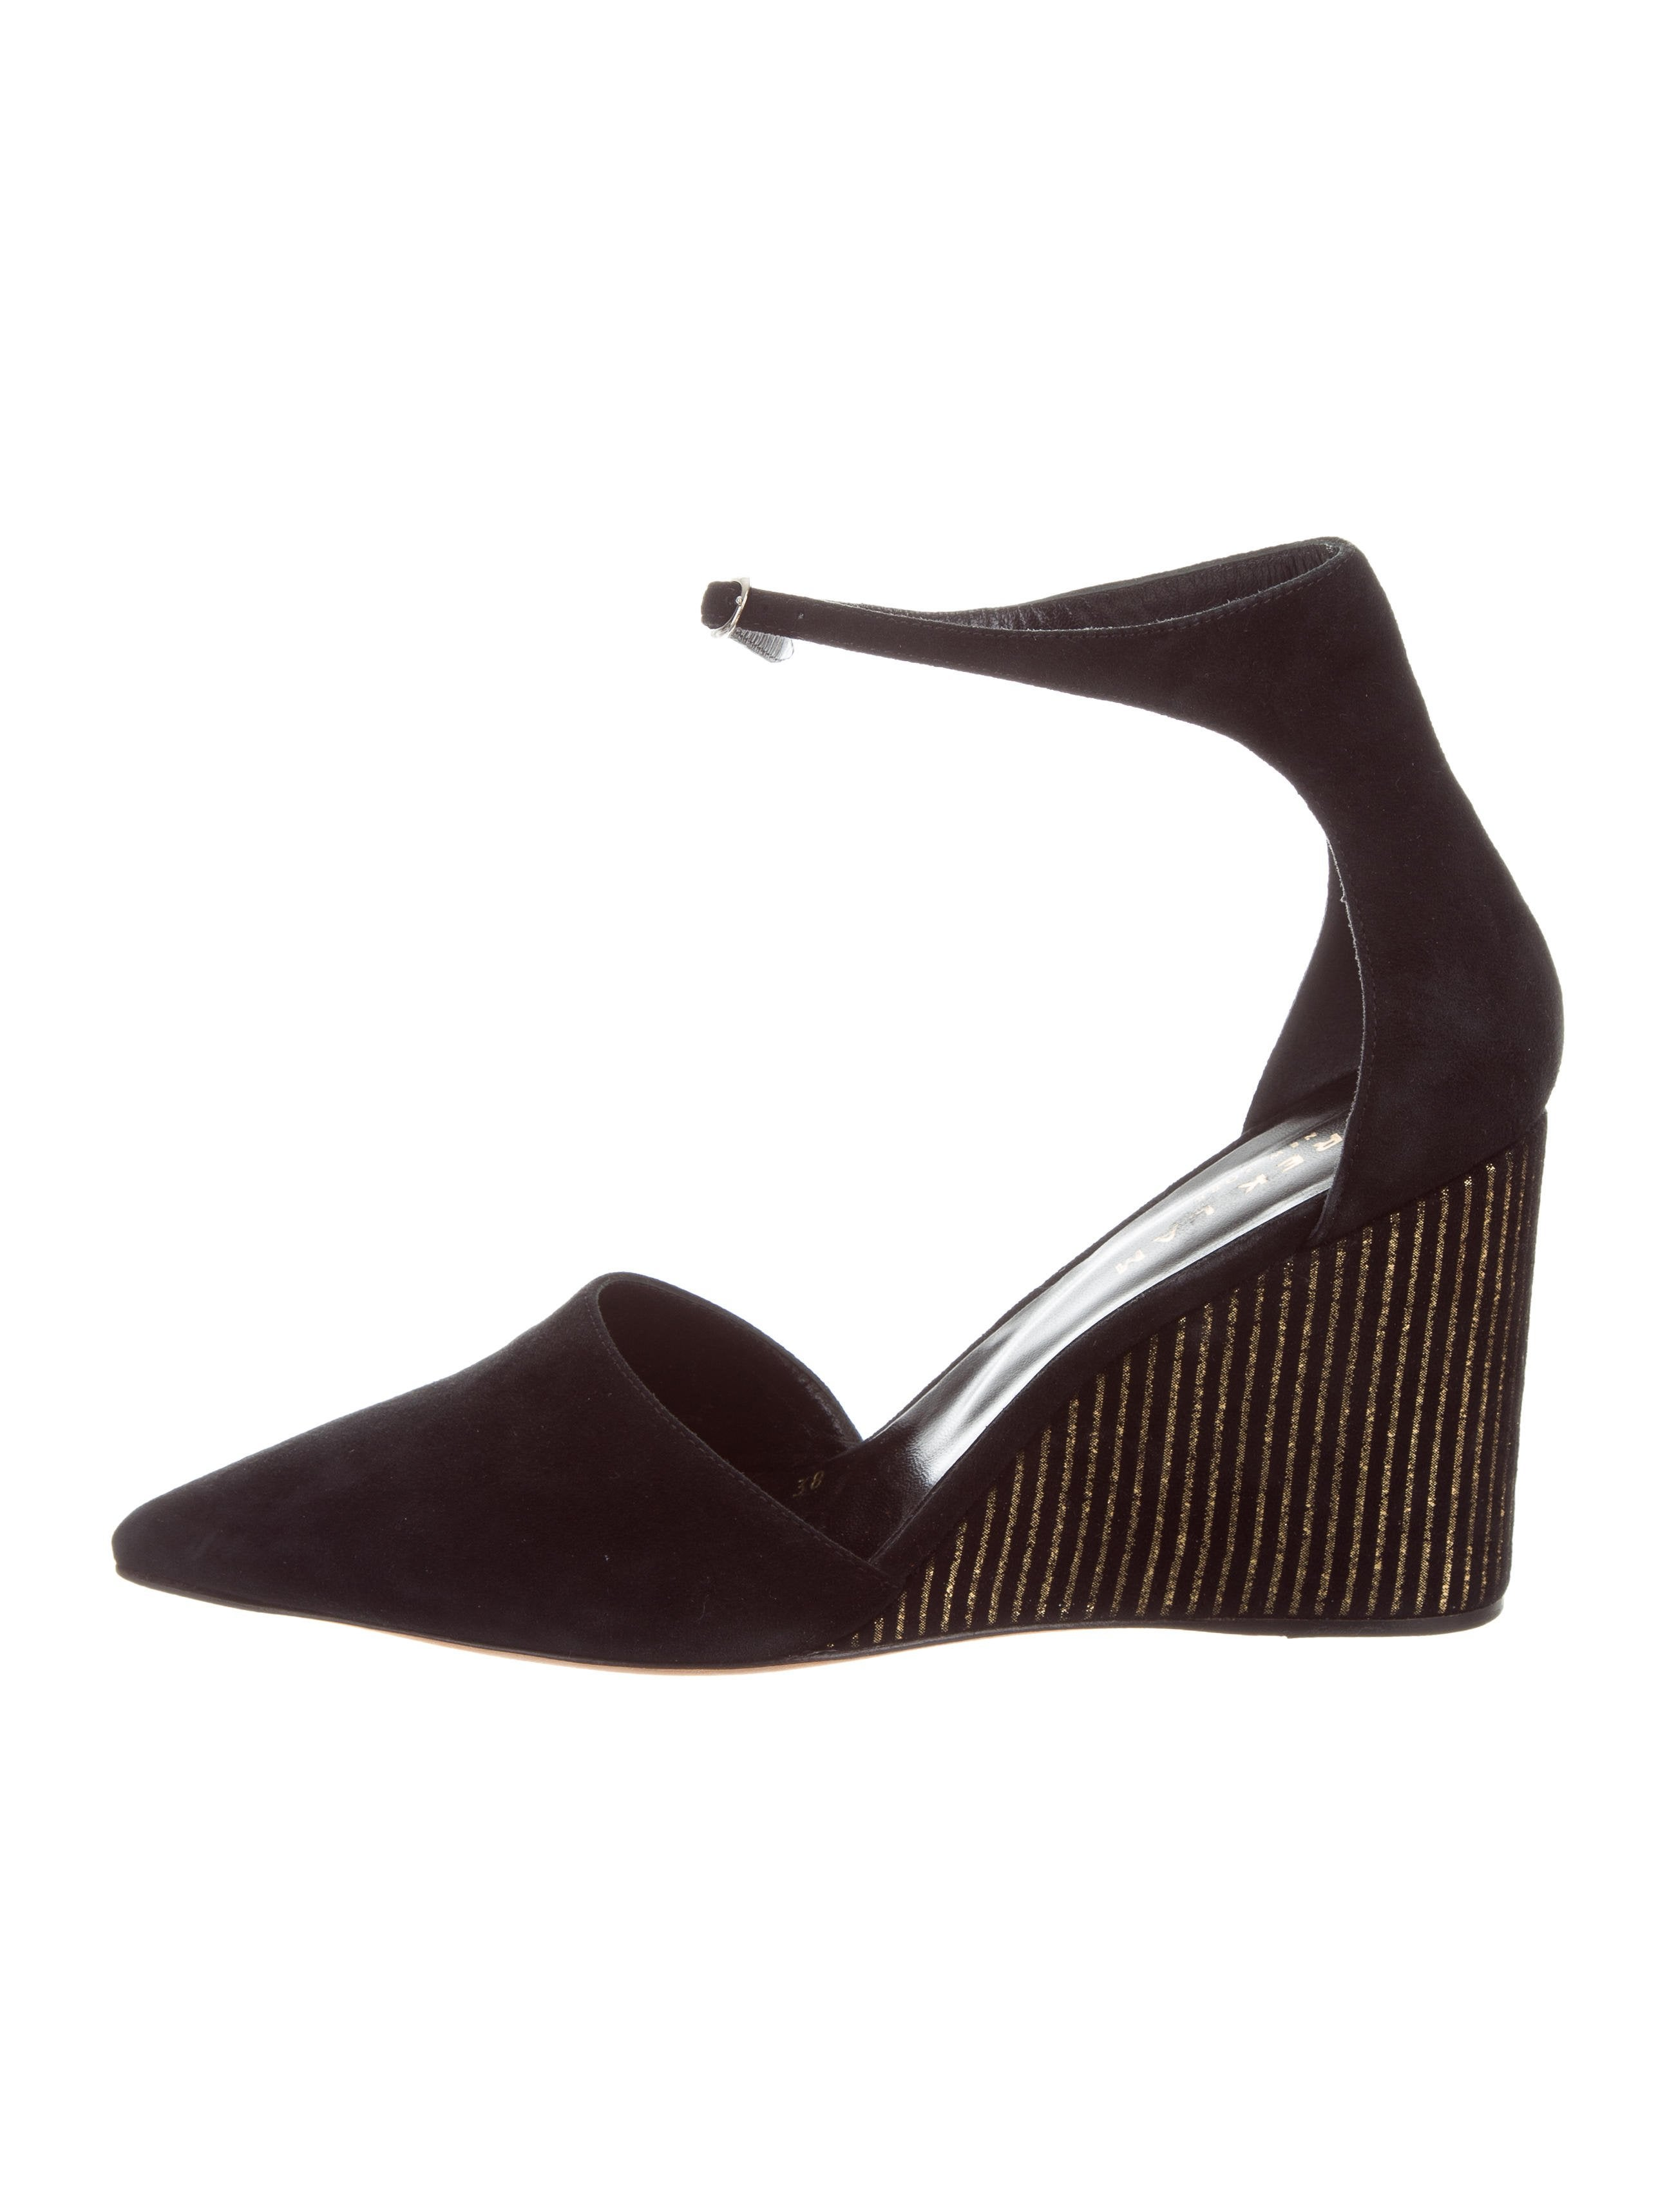 sast for sale Derek Lam Suede Pointed-Toe Wedges prices online low shipping fee cheap price clearance fashionable tfMcFL